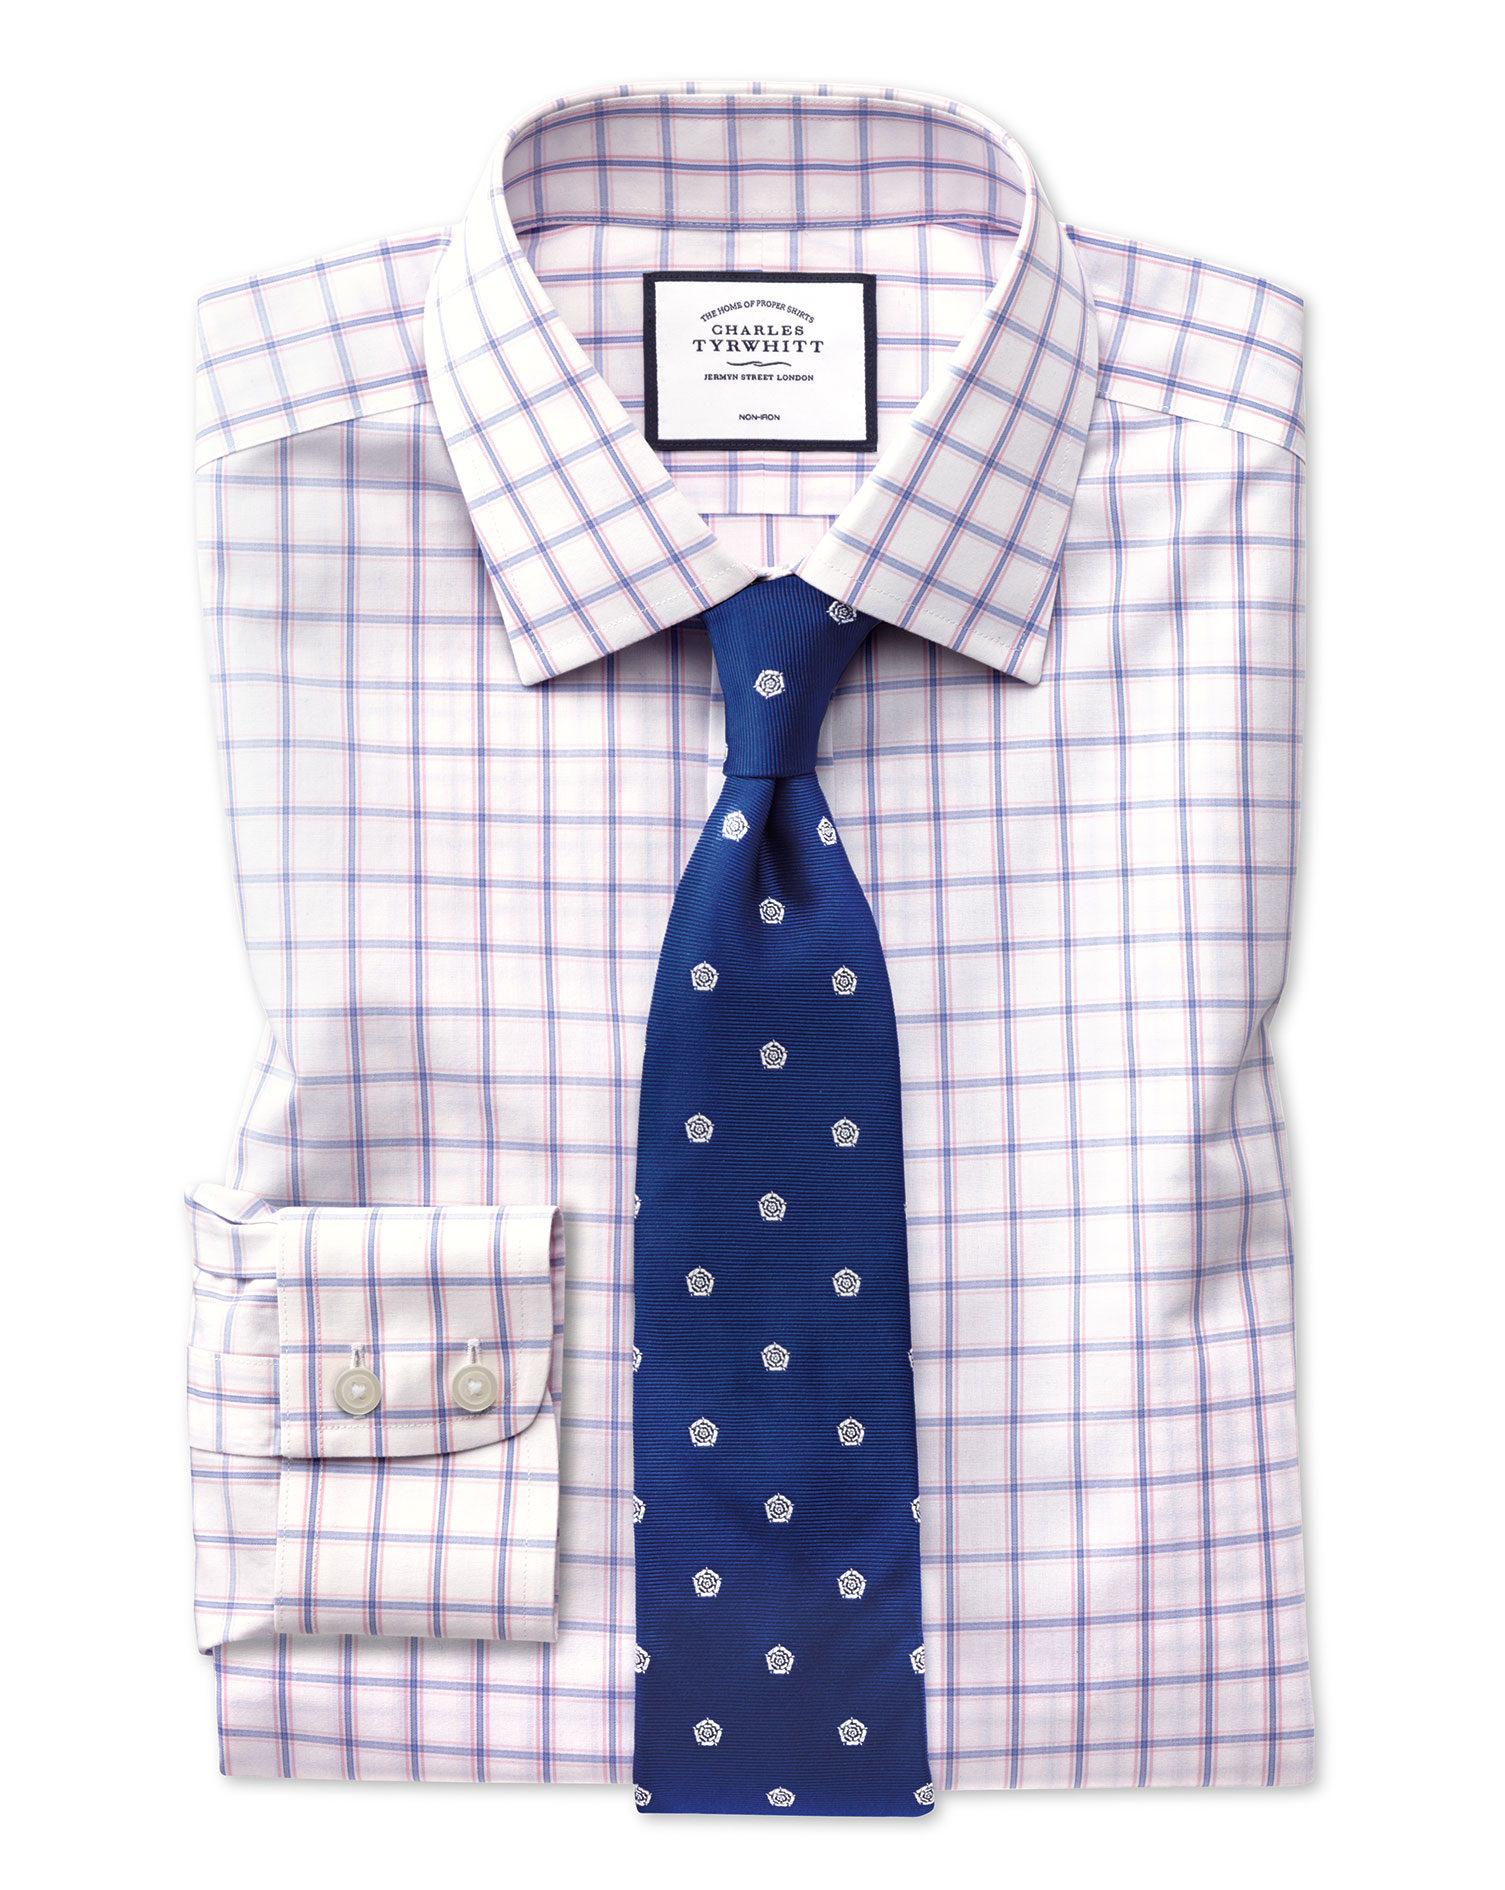 Classic Fit Non-Iron Multi Check Pink Cotton Formal Shirt Single Cuff Size 17.5/35 by Charles Tyrwhi